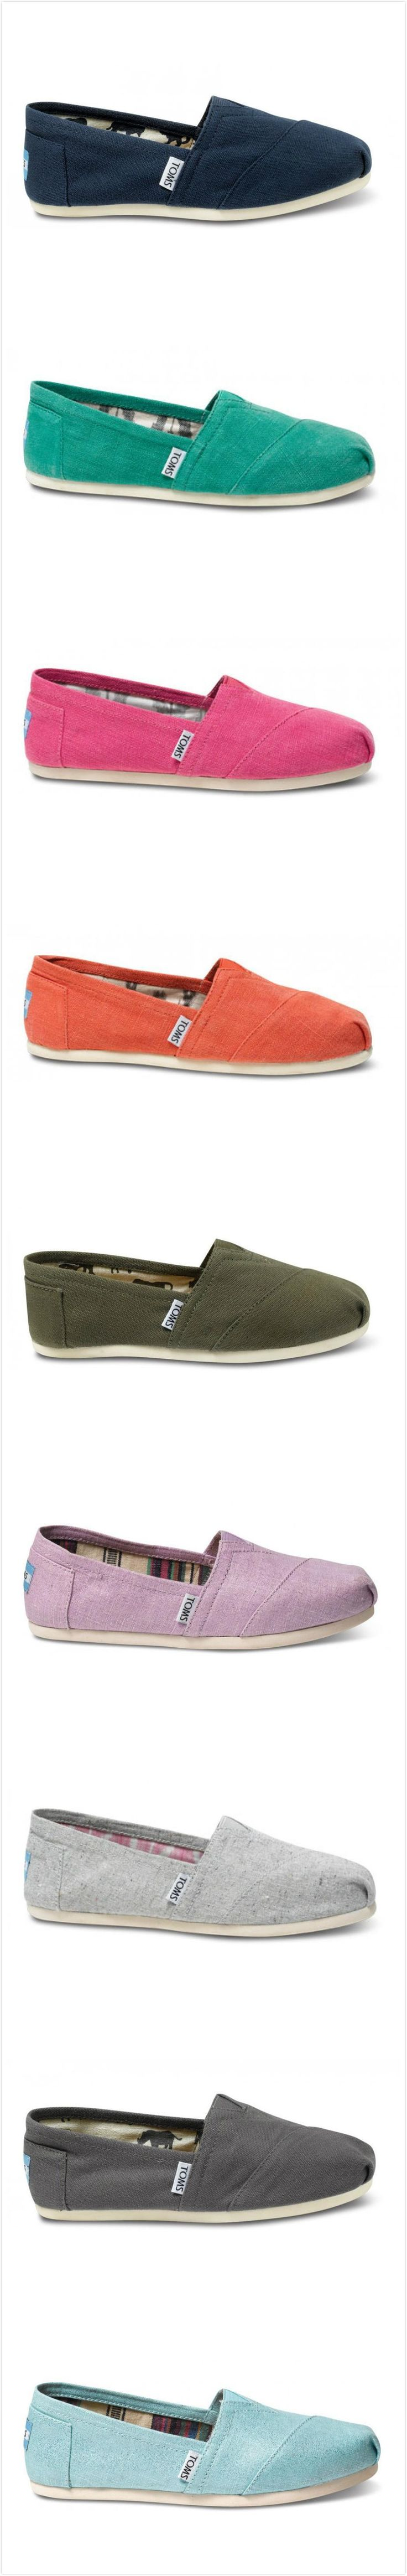 Women Toms Shoes 17.95, Toms Classics Shoes only $12, Repin It and Get it immediately! not long time for cheapest